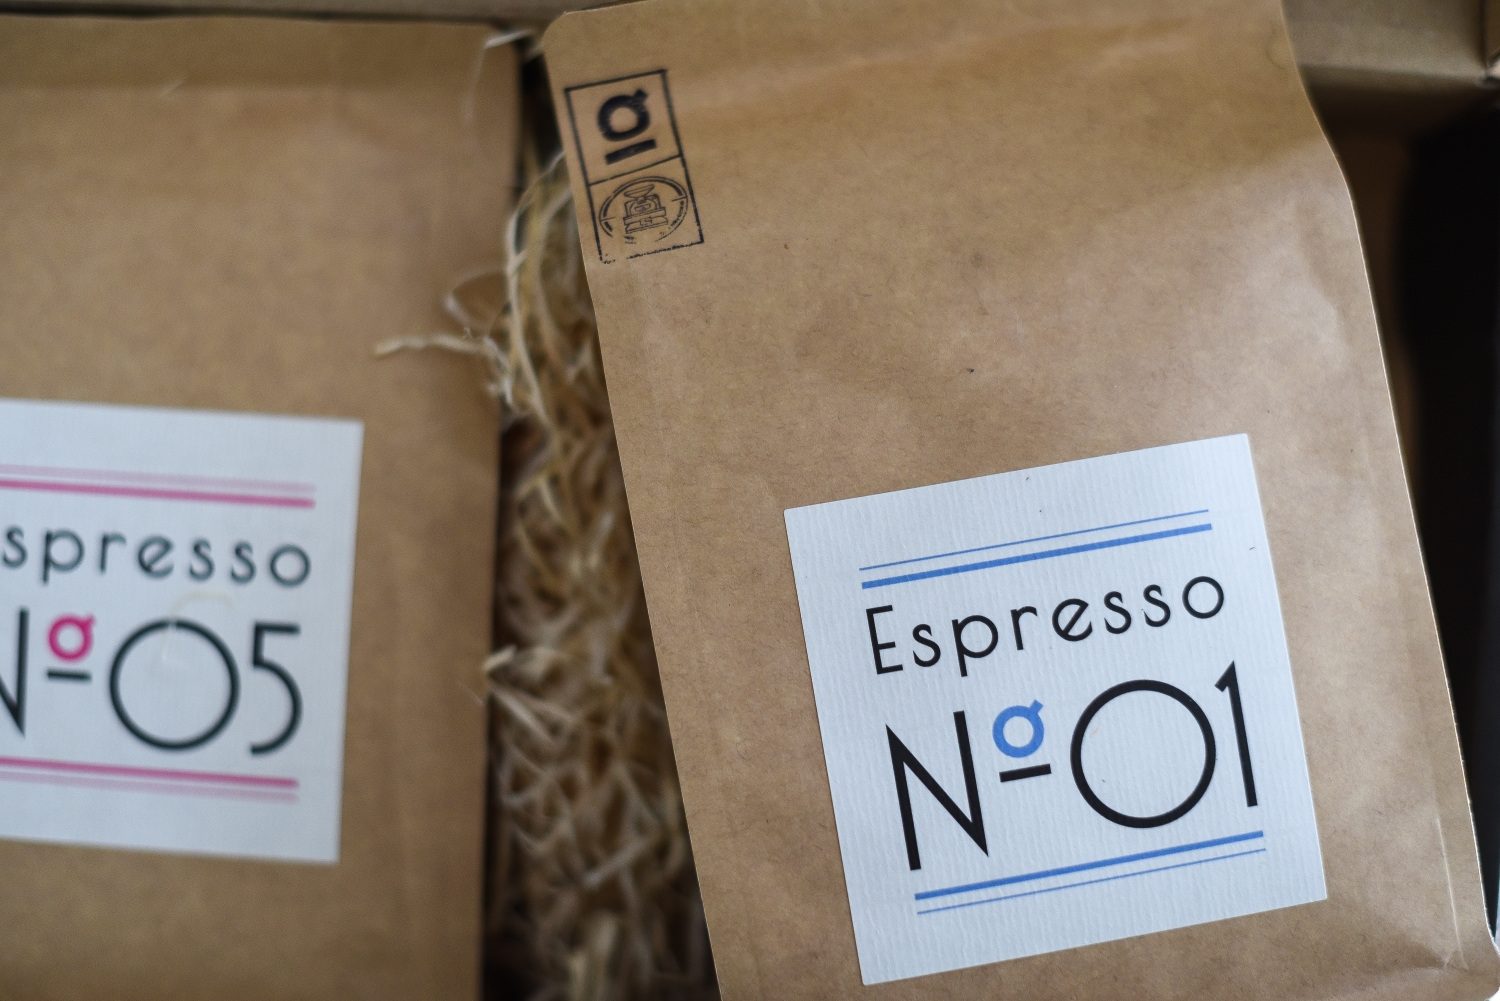 You are currently viewing Espresso N°01 von Coffee858